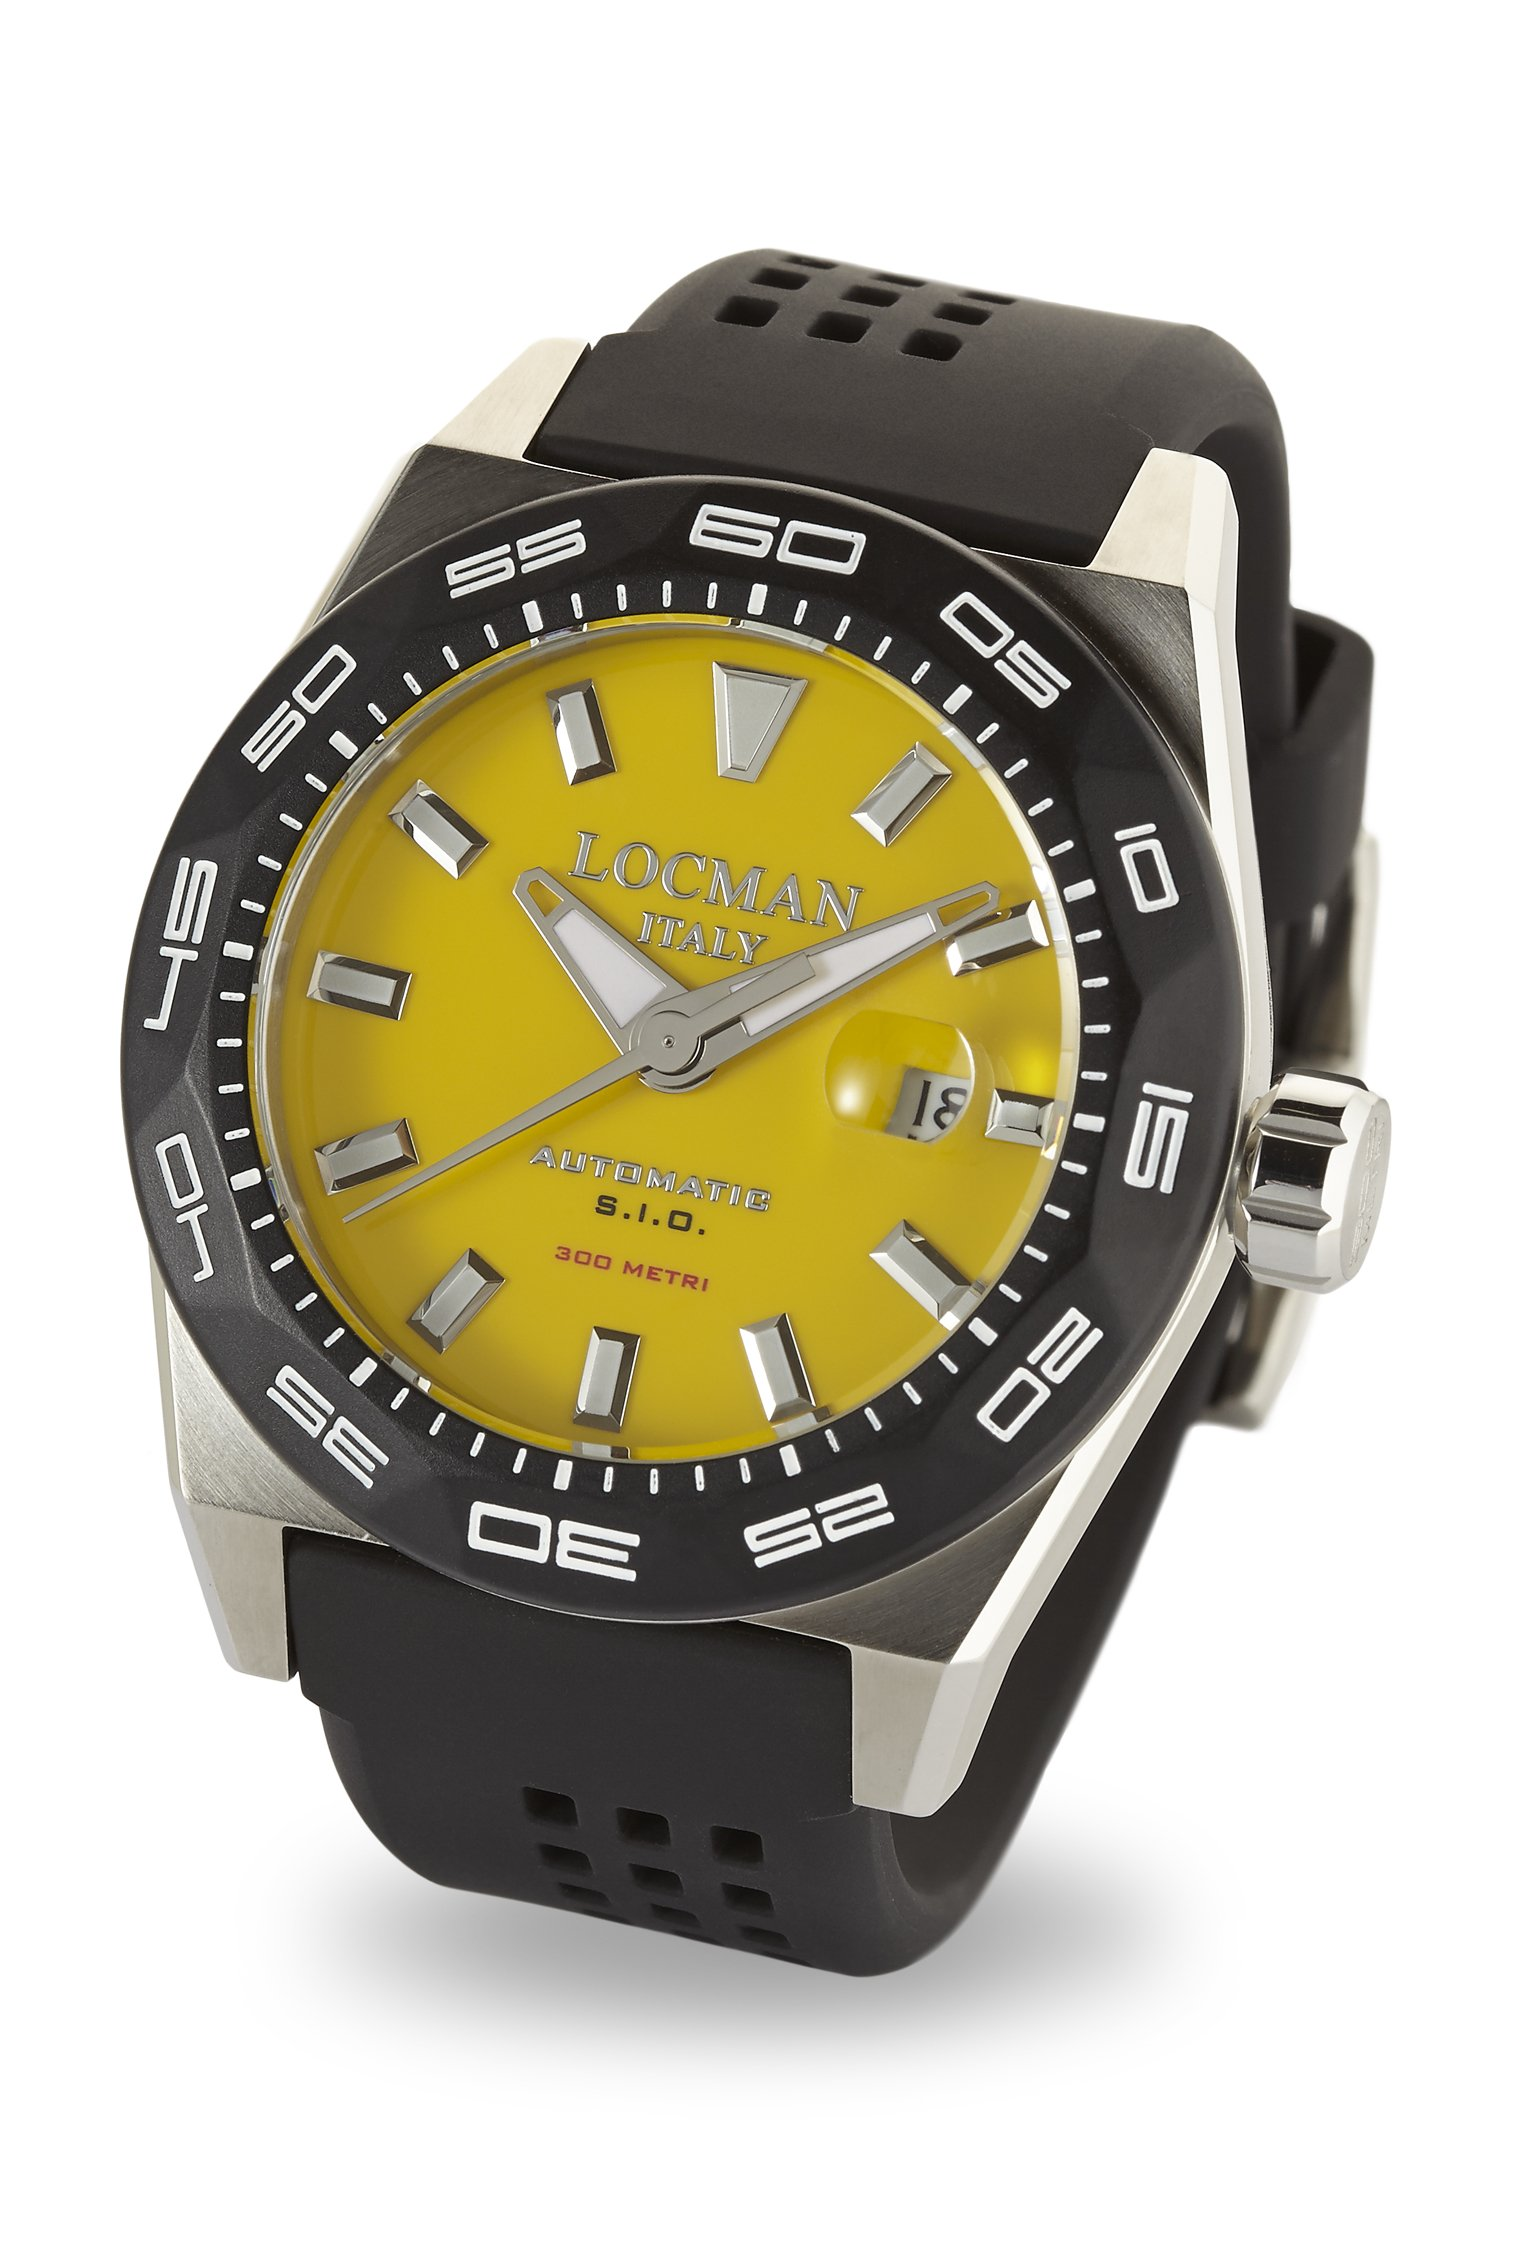 Locman Italy Men's 'Stealth 300 Metri' Automatic Stainless Steel and Rubber Diving Watch, Color:Black (Model: 0215V2-0KYLNKS2K)